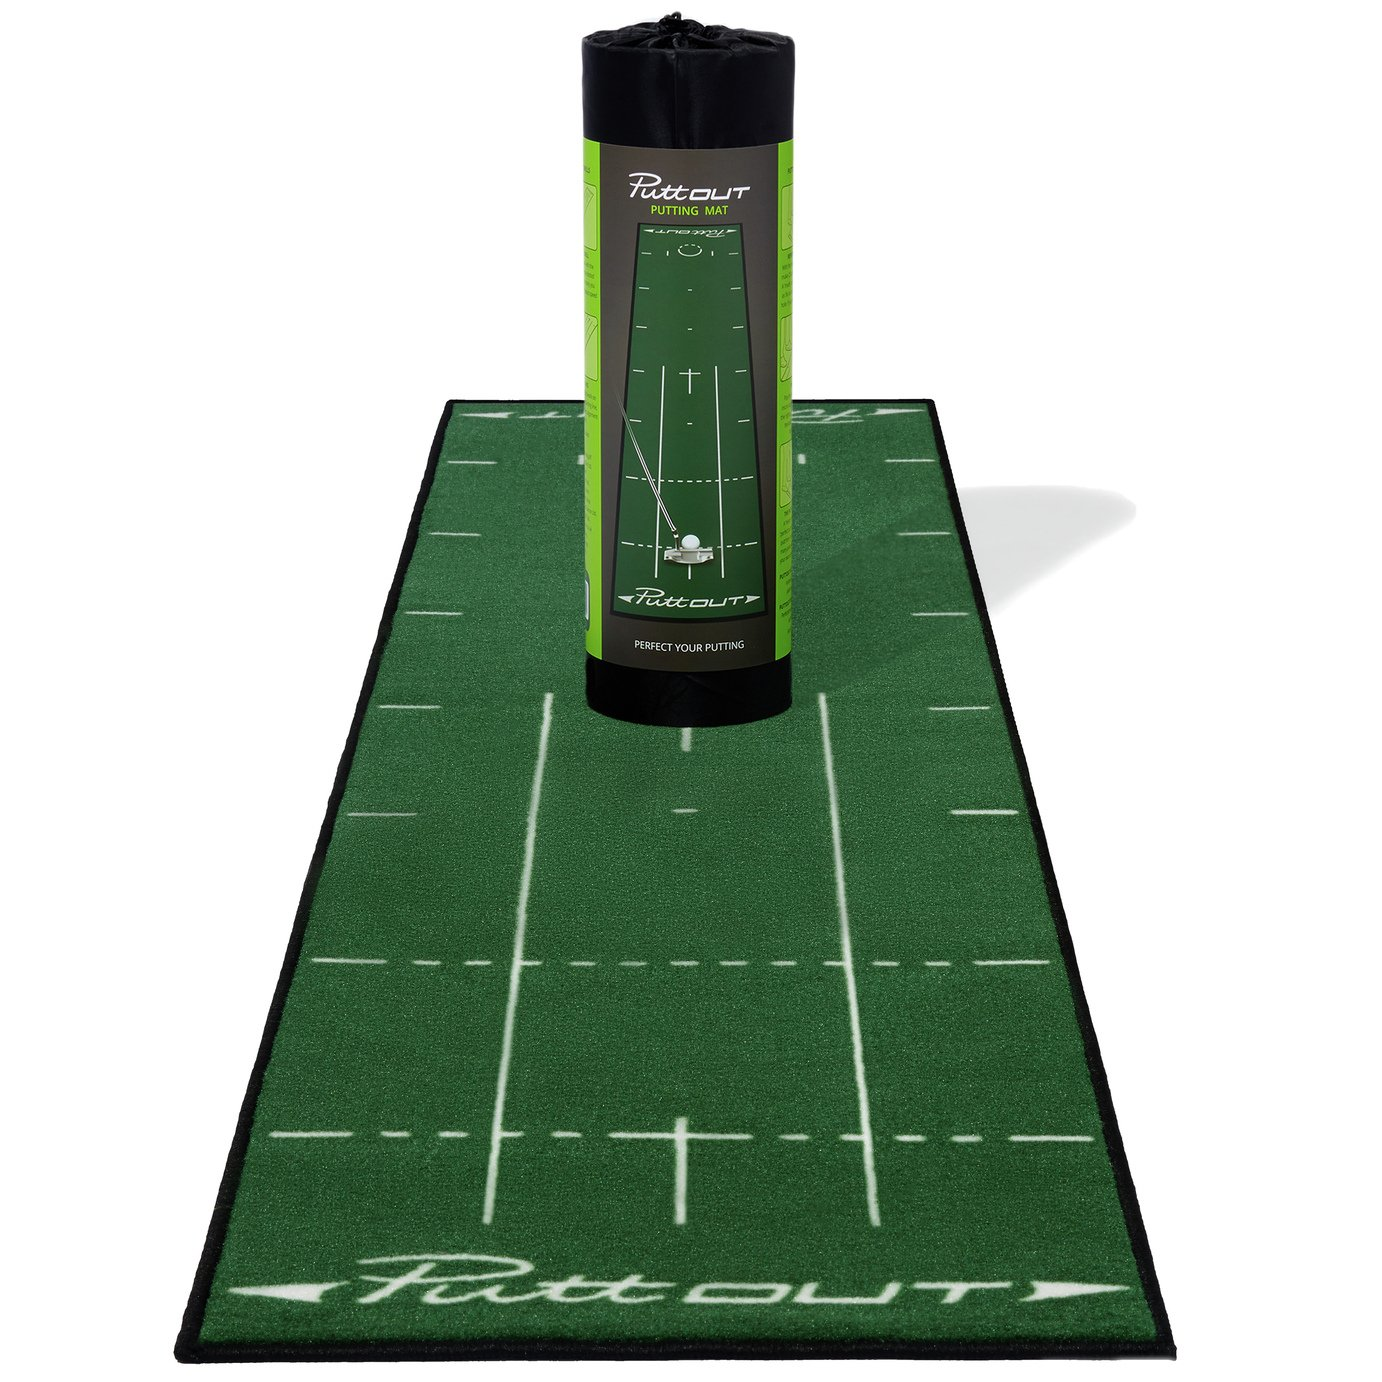 PuttOUT Pro Deluxe Golf Putting Mat